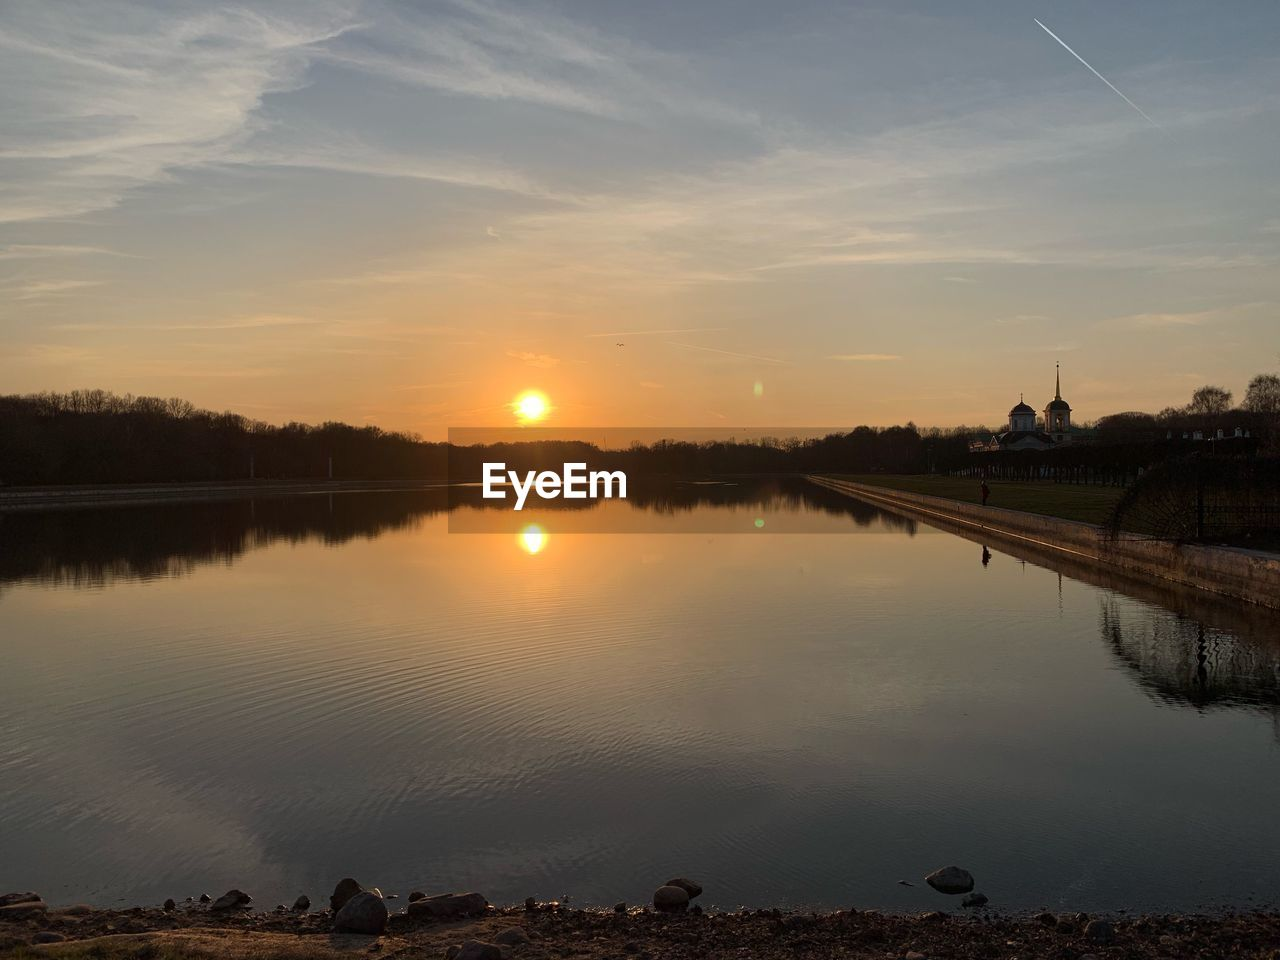 water, sunset, sky, reflection, scenics - nature, beauty in nature, tranquility, tranquil scene, lake, nature, no people, cloud - sky, sun, orange color, idyllic, non-urban scene, outdoors, plant, tree